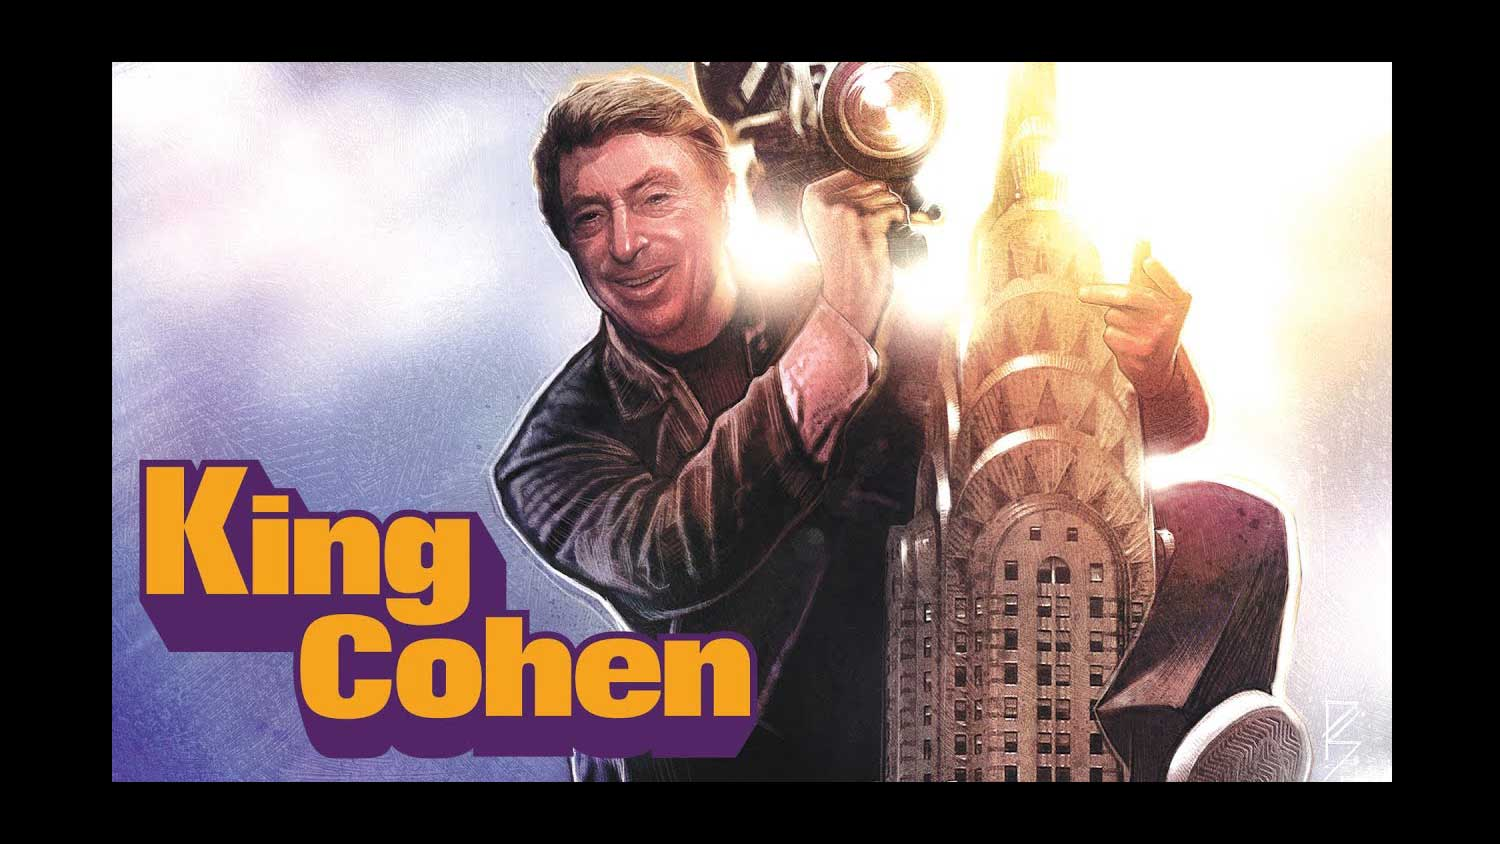 King Cohen: The Wild World Of Filmmaker Larry Cohen Review - OC Movie Reviews - Movie Reviews, Movie News, Documentary Reviews, Short Films, Short Film Reviews, Trailers, Movie Trailers, Interviews, film reviews, film news, hollywood, indie films, documentaries